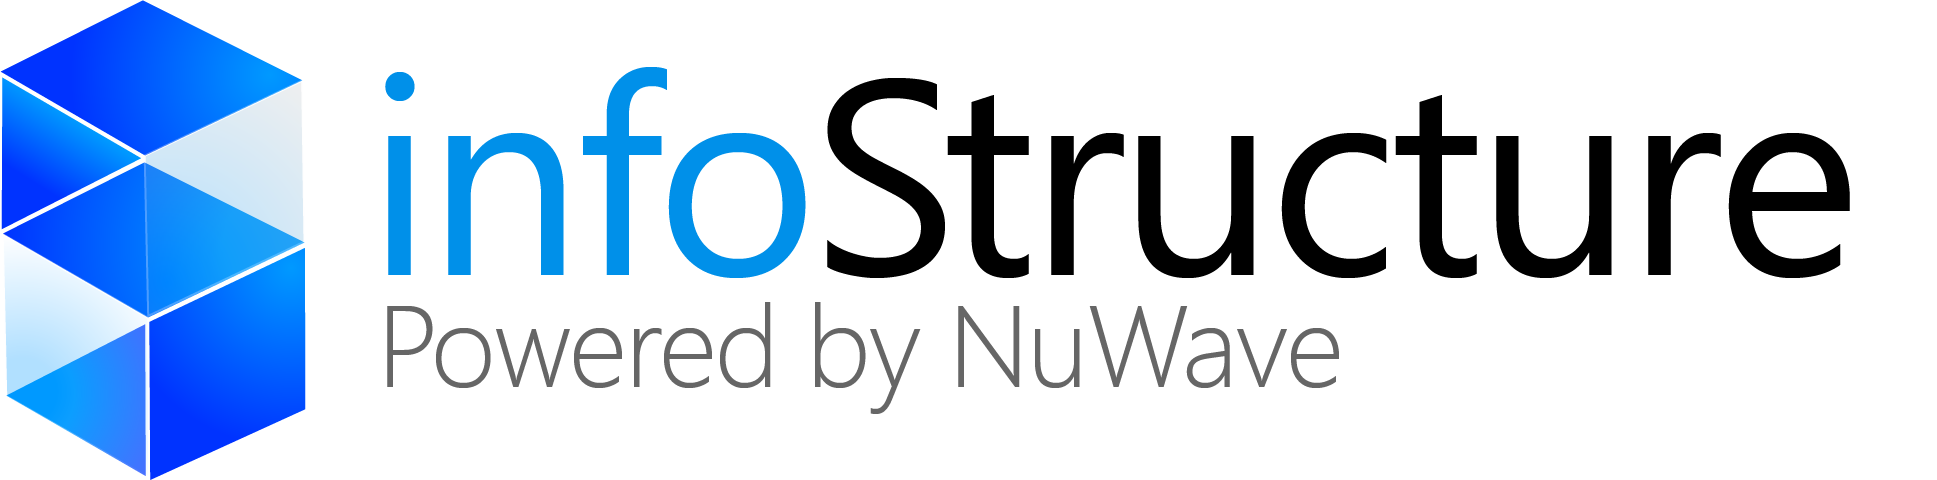 infoStructure powered by NuWave for microsoft teams